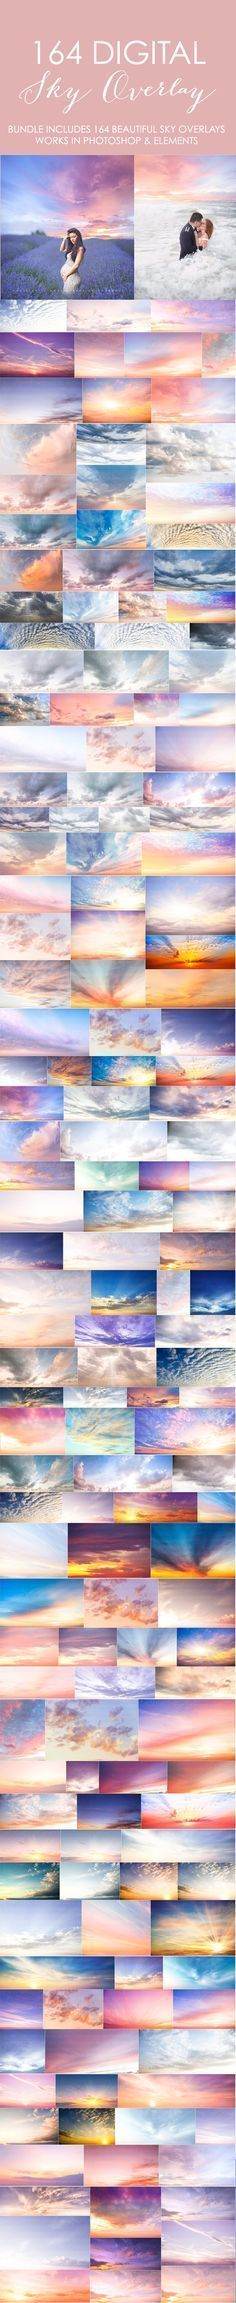 These are STUNNING!!! Bundle includes 164 beautiful sky overlays. Just choose your sky, copy and paste it over your own image and then erase what you don't need. Transform your images into something magical with these sky overlays. $55 #SkyBeutiful